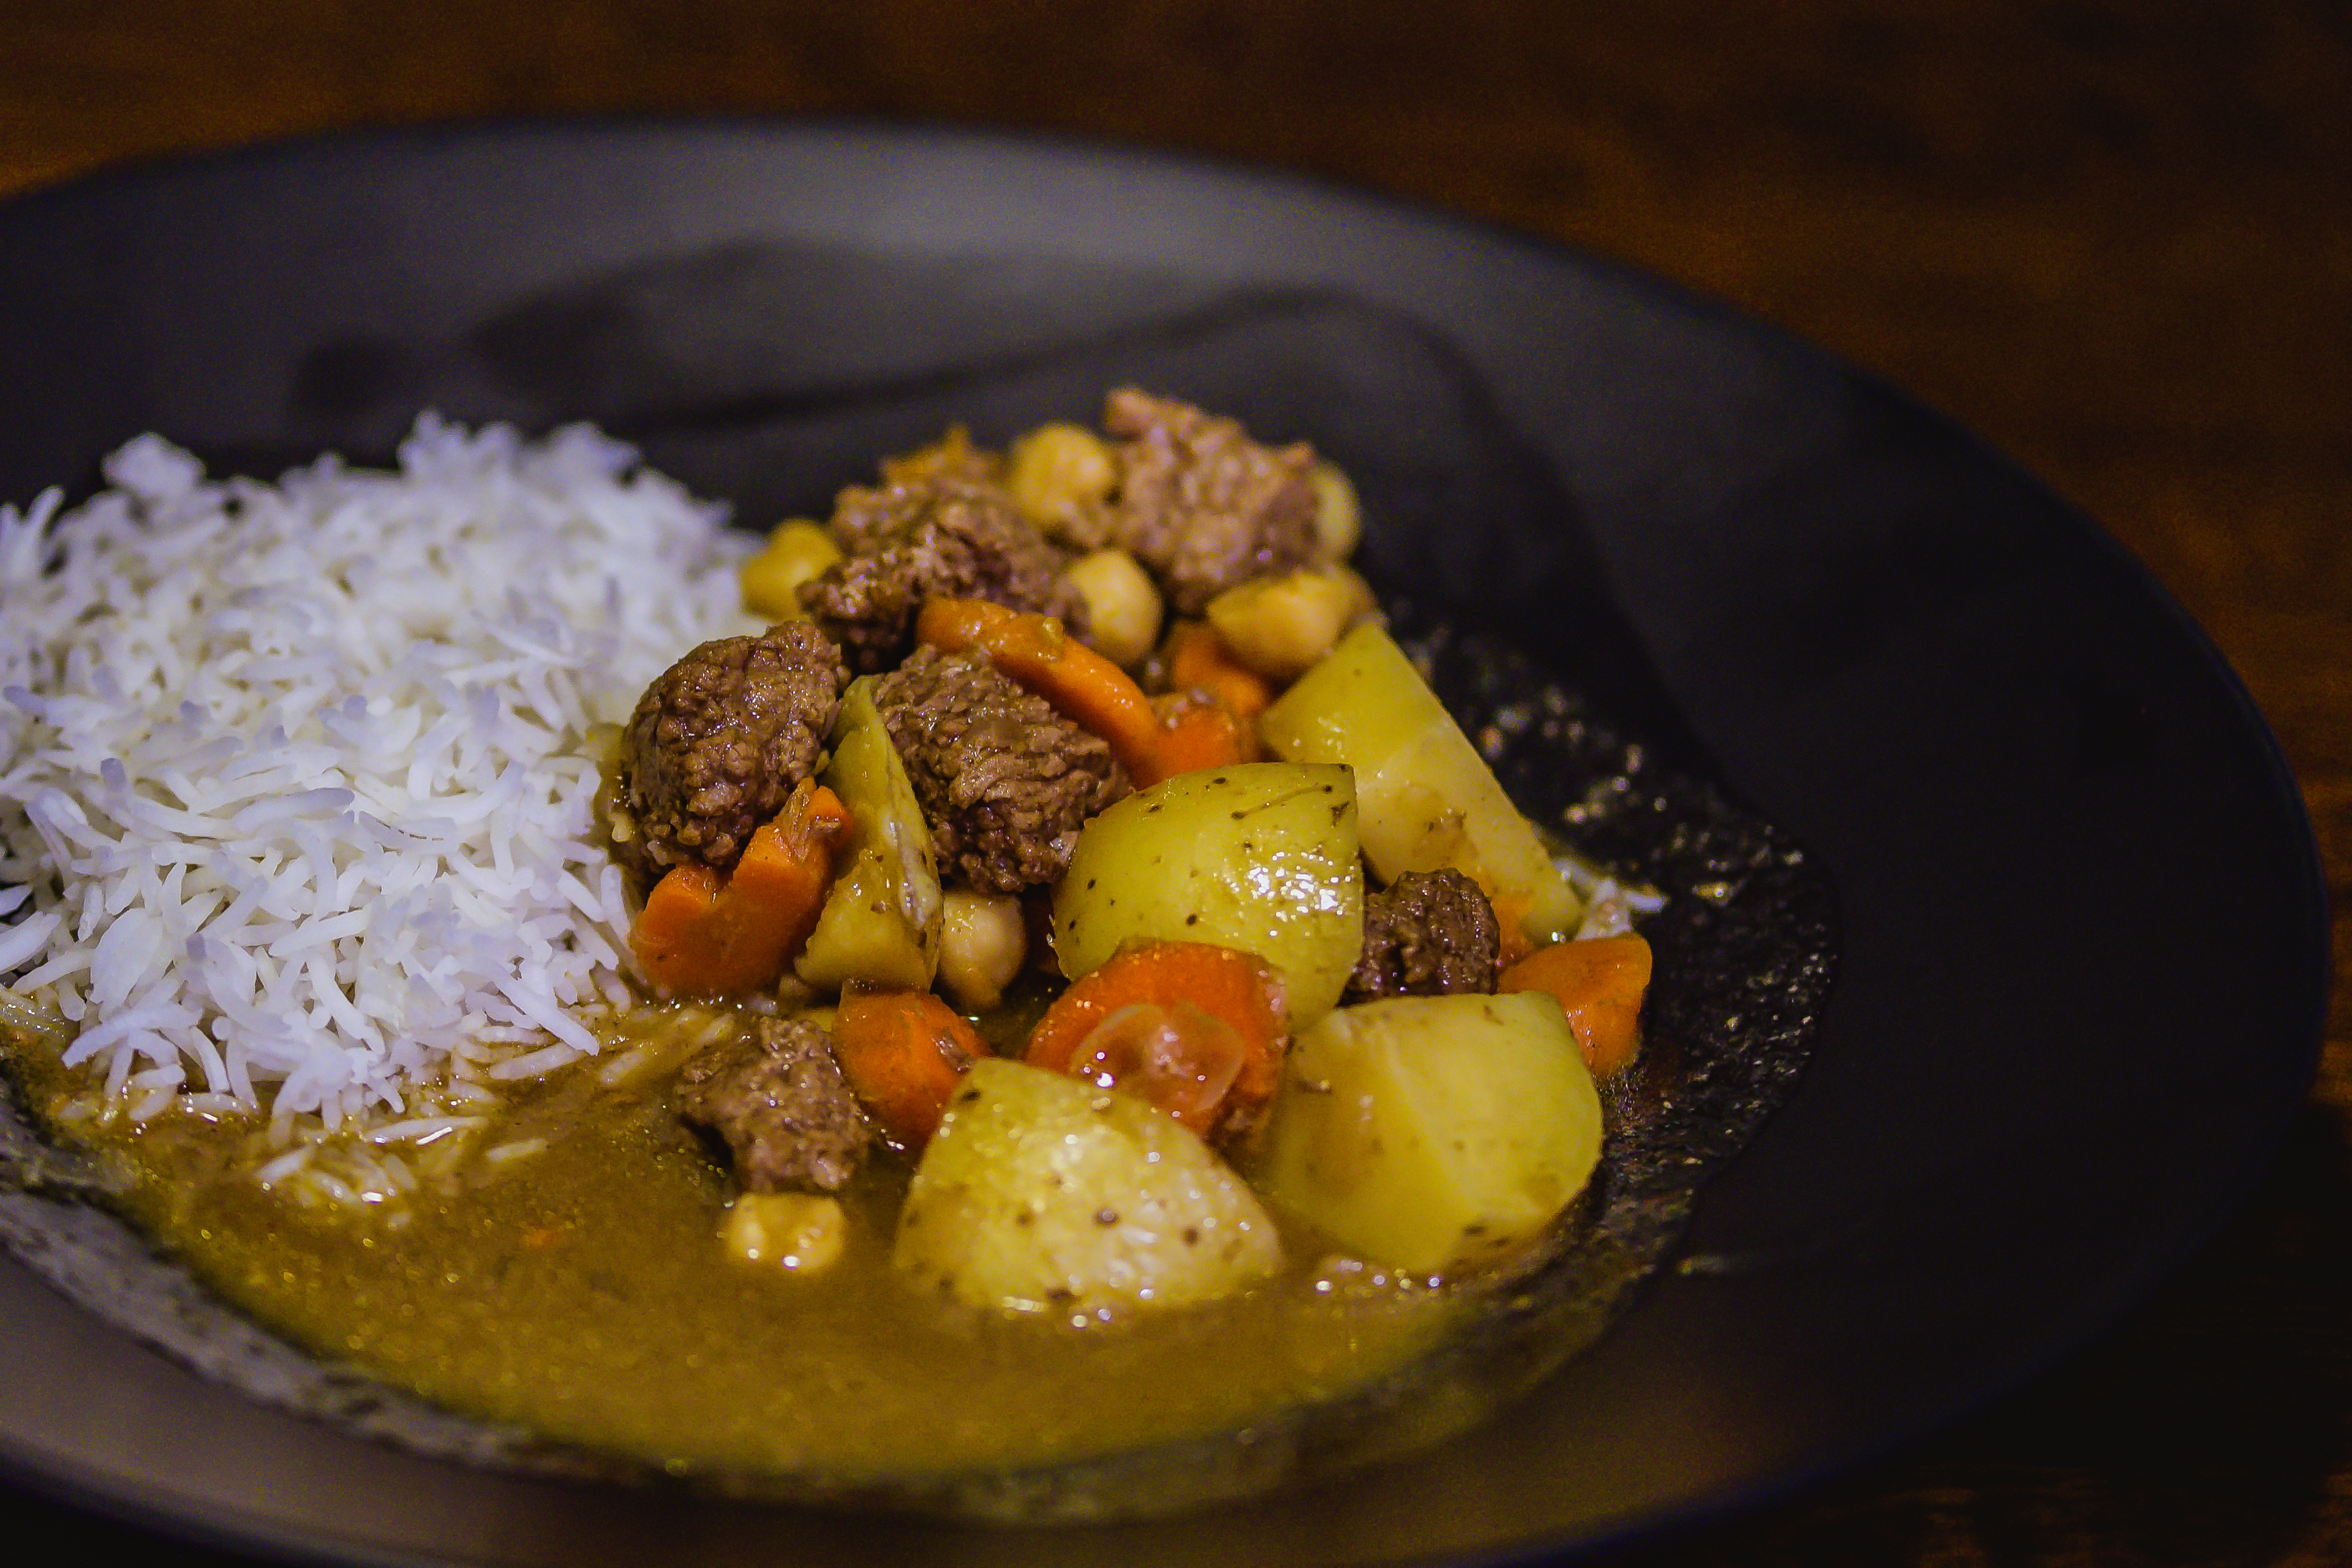 Porter Curry Beef Stew on the plate with basmati rice